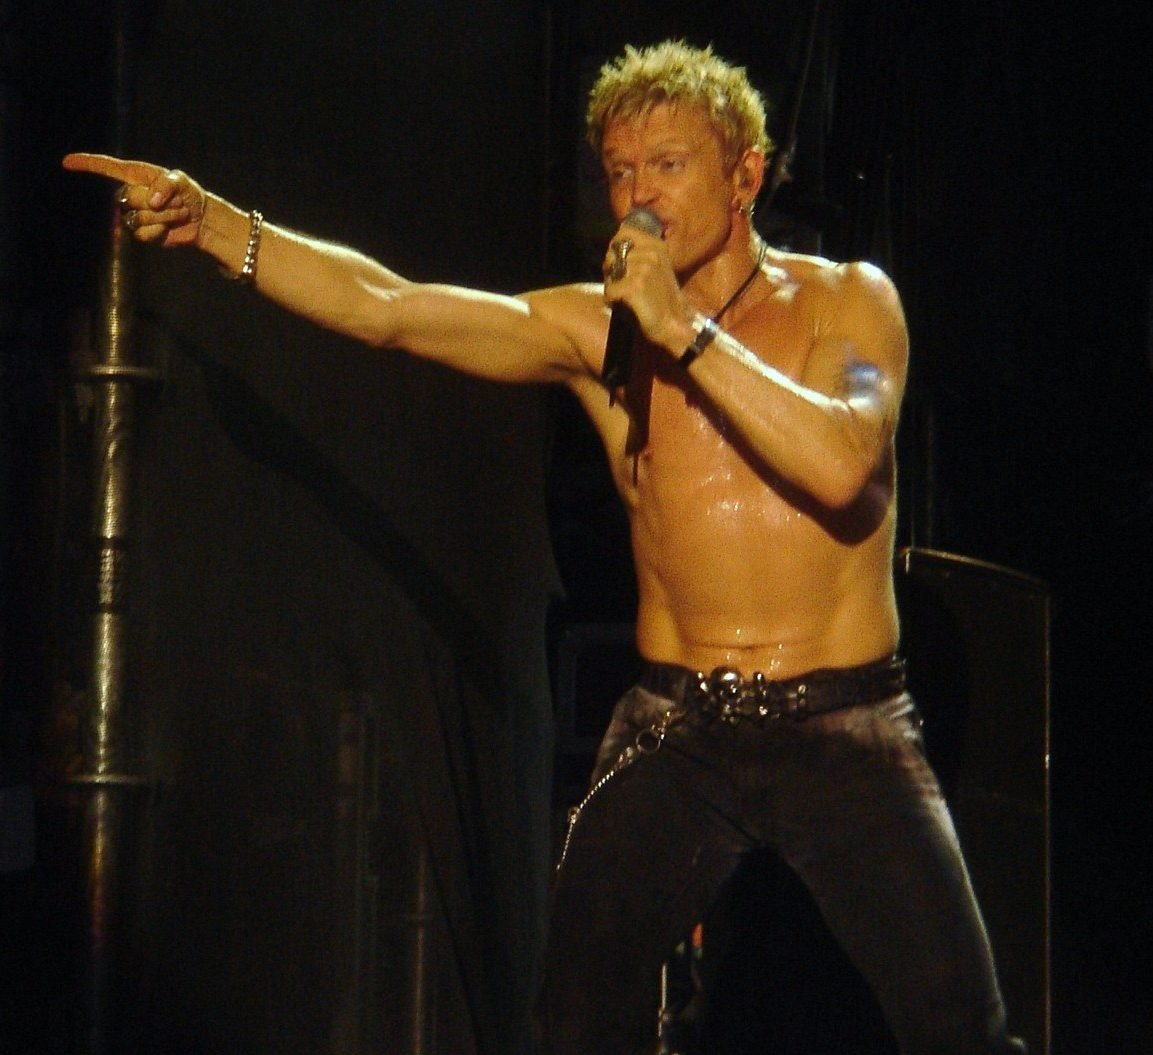 Billy IDOL 2006 e1616672559594 20 Things You Probably Didn't Know About Billy Idol